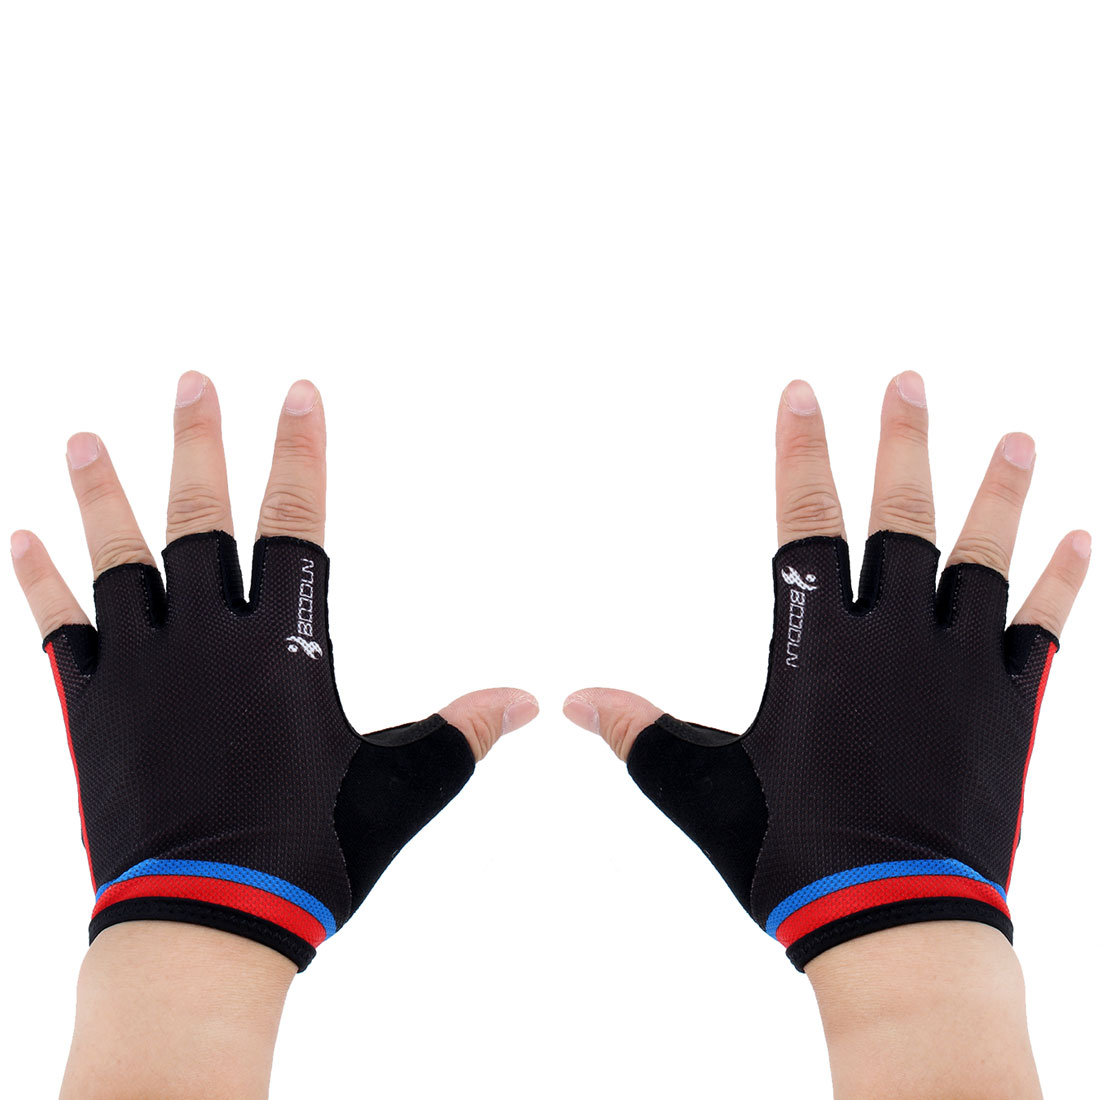 BOODUN Authorized Unisex Gym Workout Training Anti Skid Breathable Fitness Half Finger Gloves #3 L Size Pair